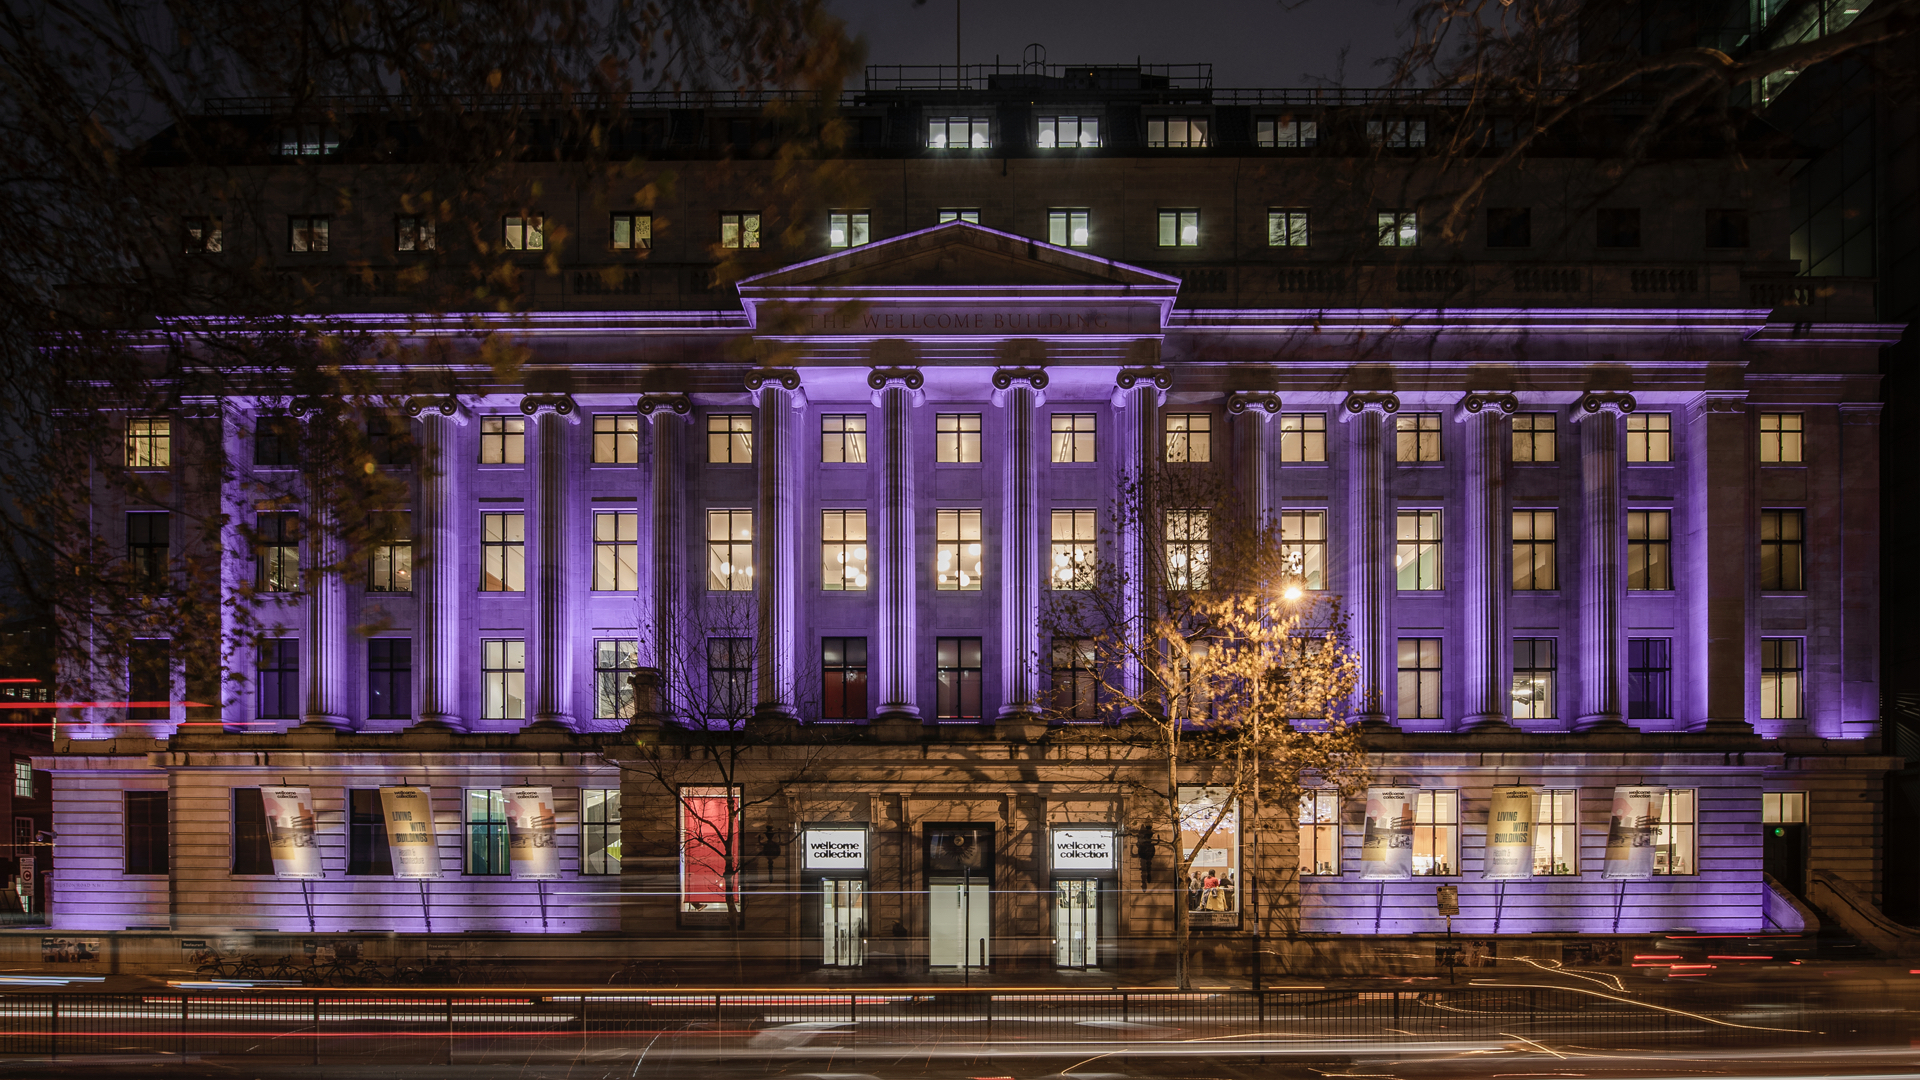 The Wellcome Collection building, lit up in purple.